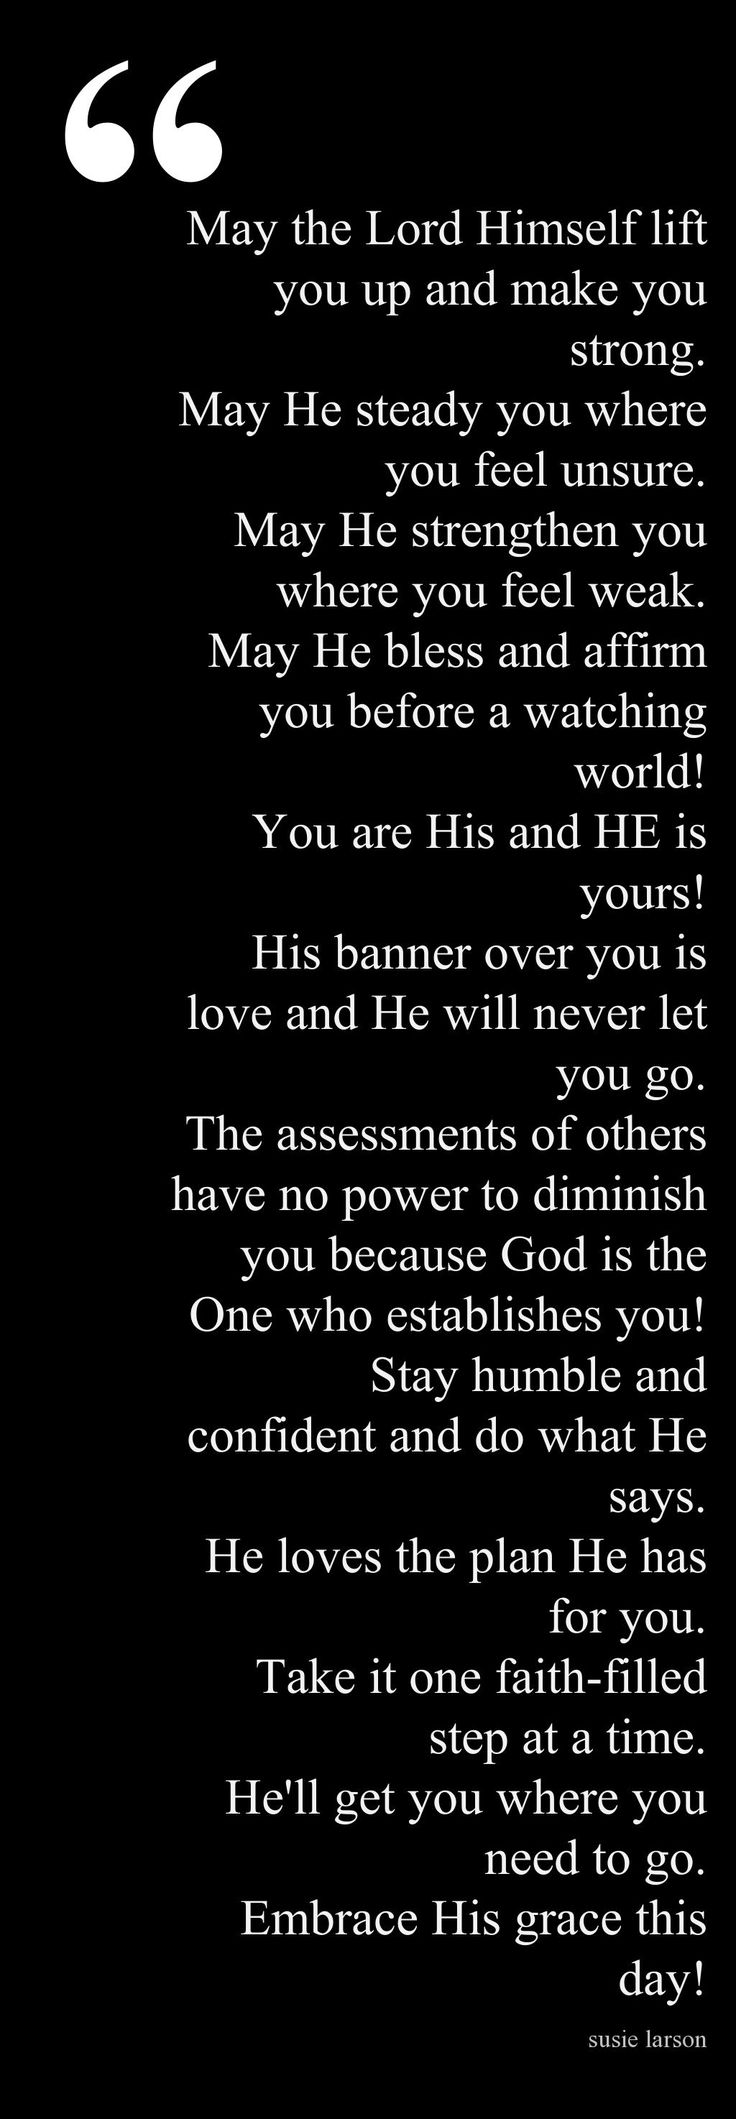 Day Blessing ~ And I prayerfully add:  Read PSALM 139....It speaks how well God knows each one of us.  No matter what you go through, He is with you.